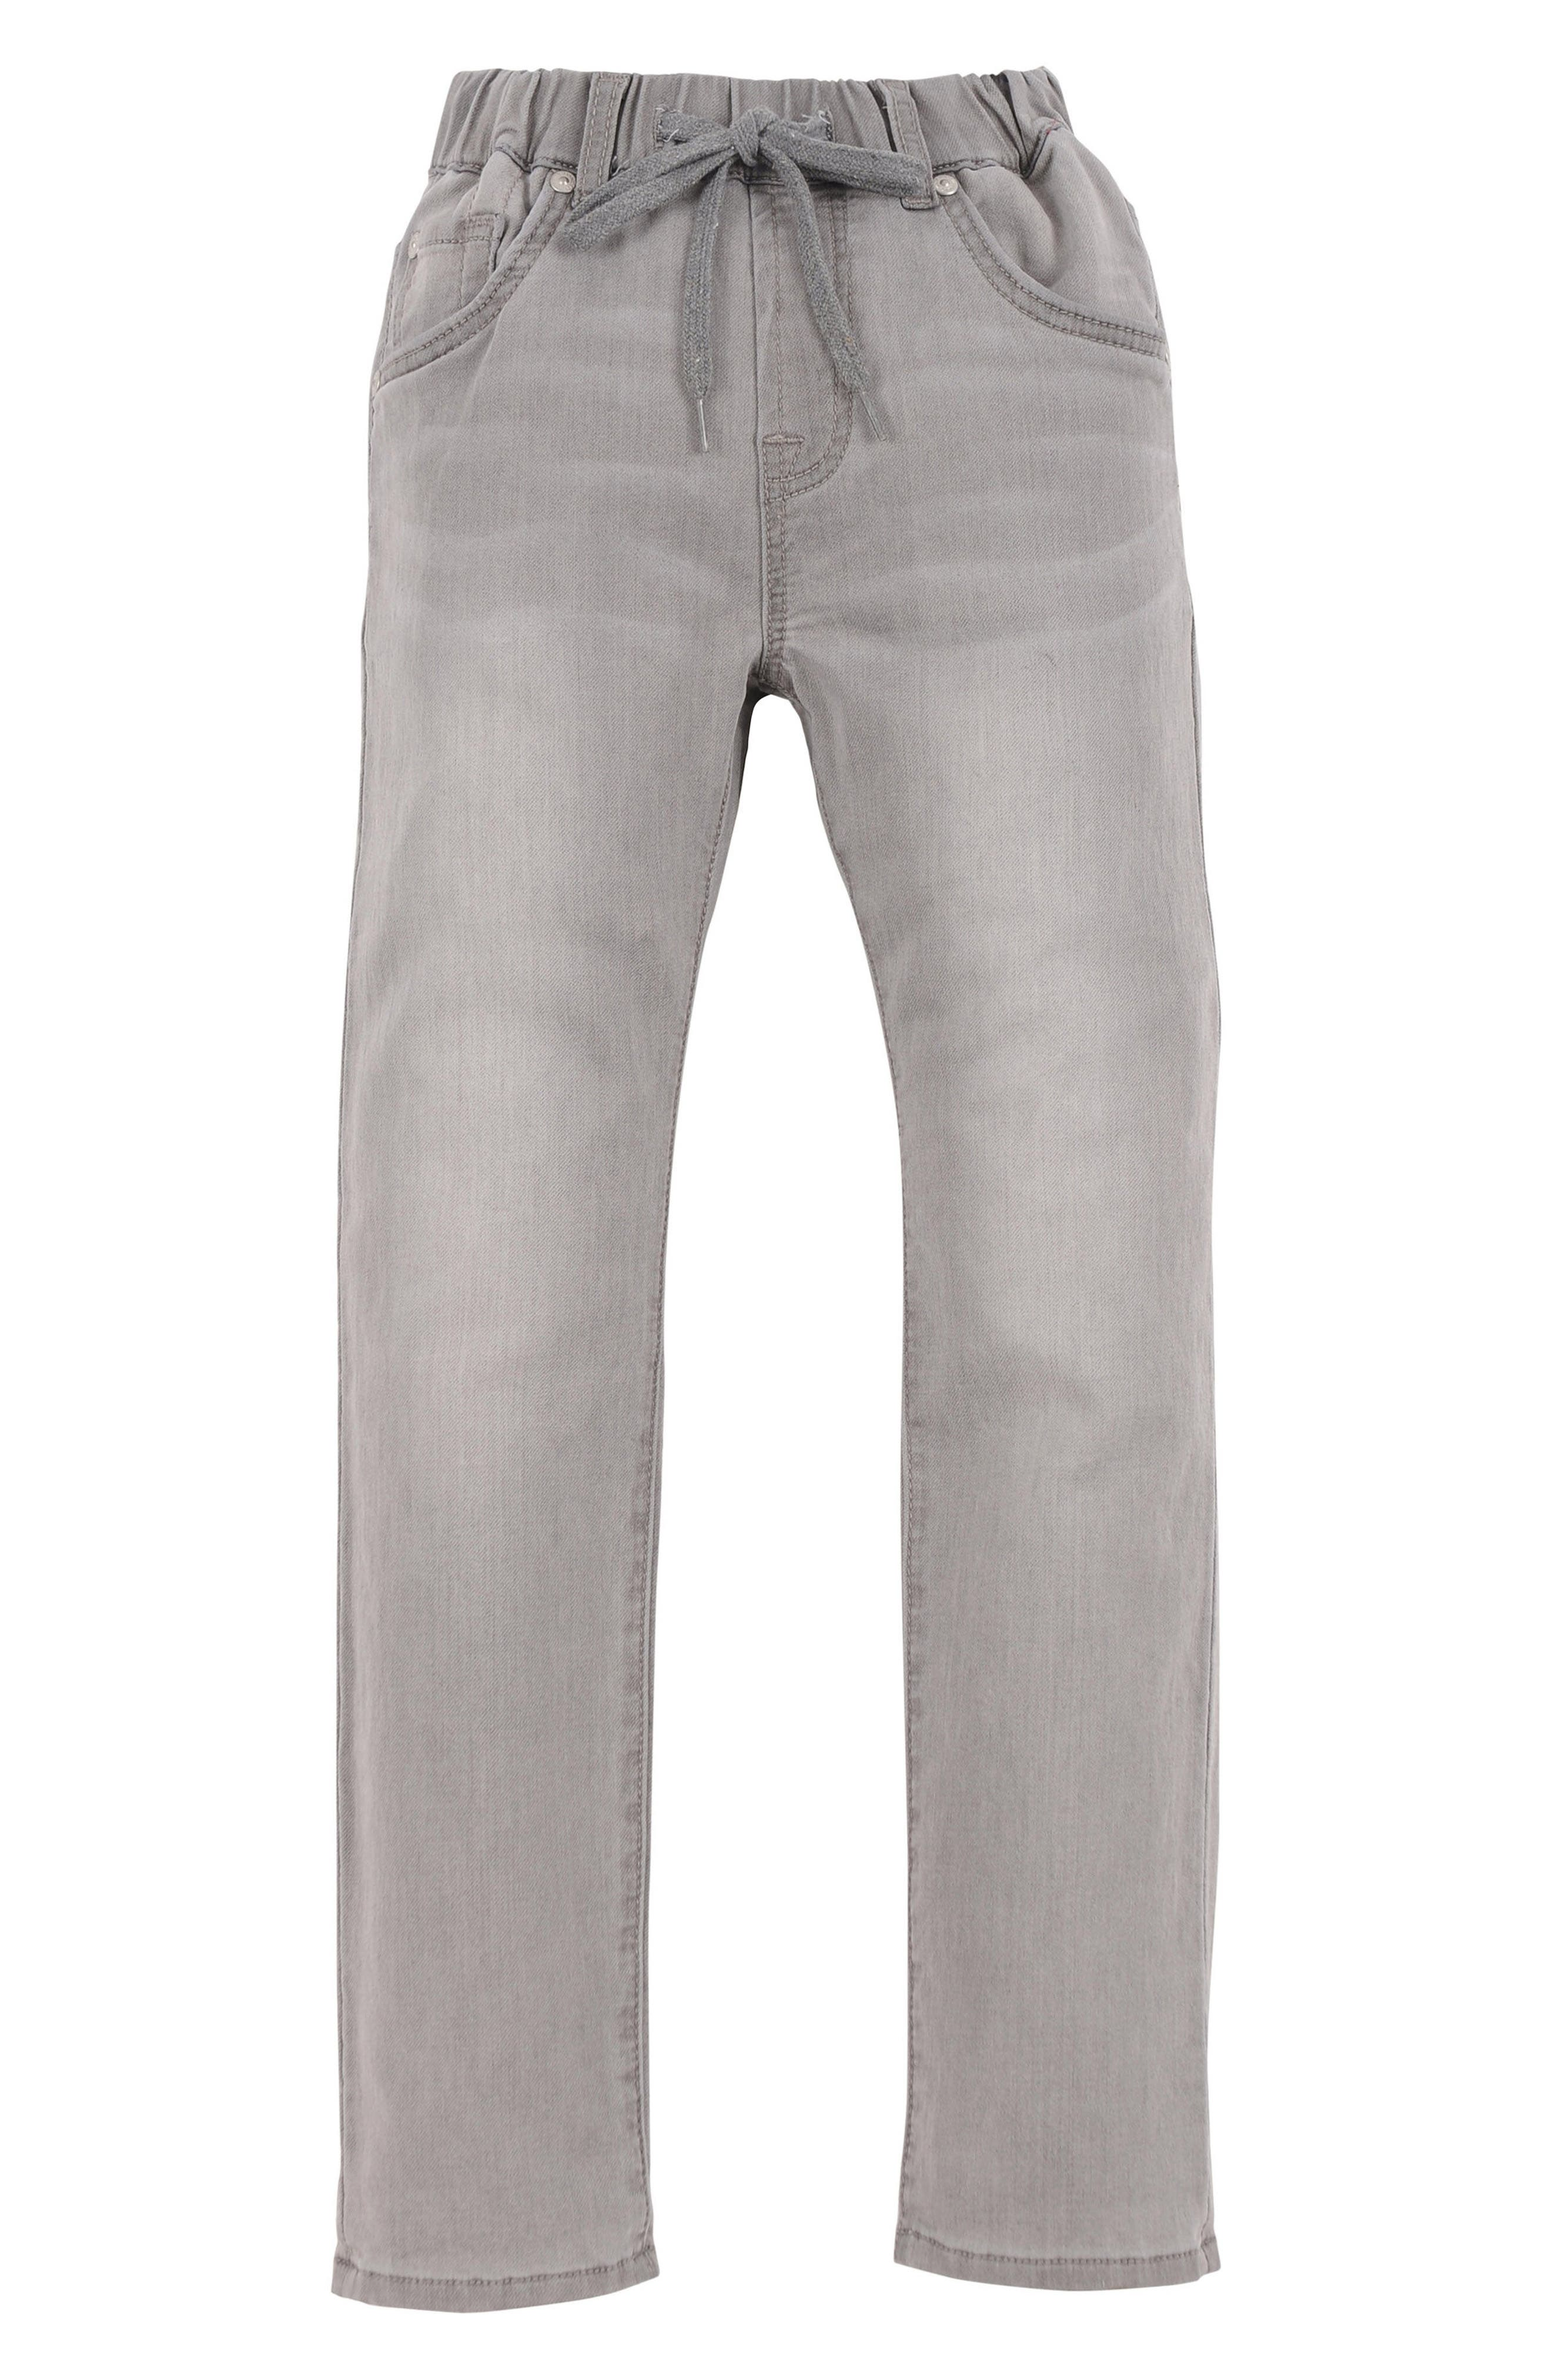 Alternate Image 1 Selected - 7 For All Mankind® Jogger Pants (Toddler Boys)